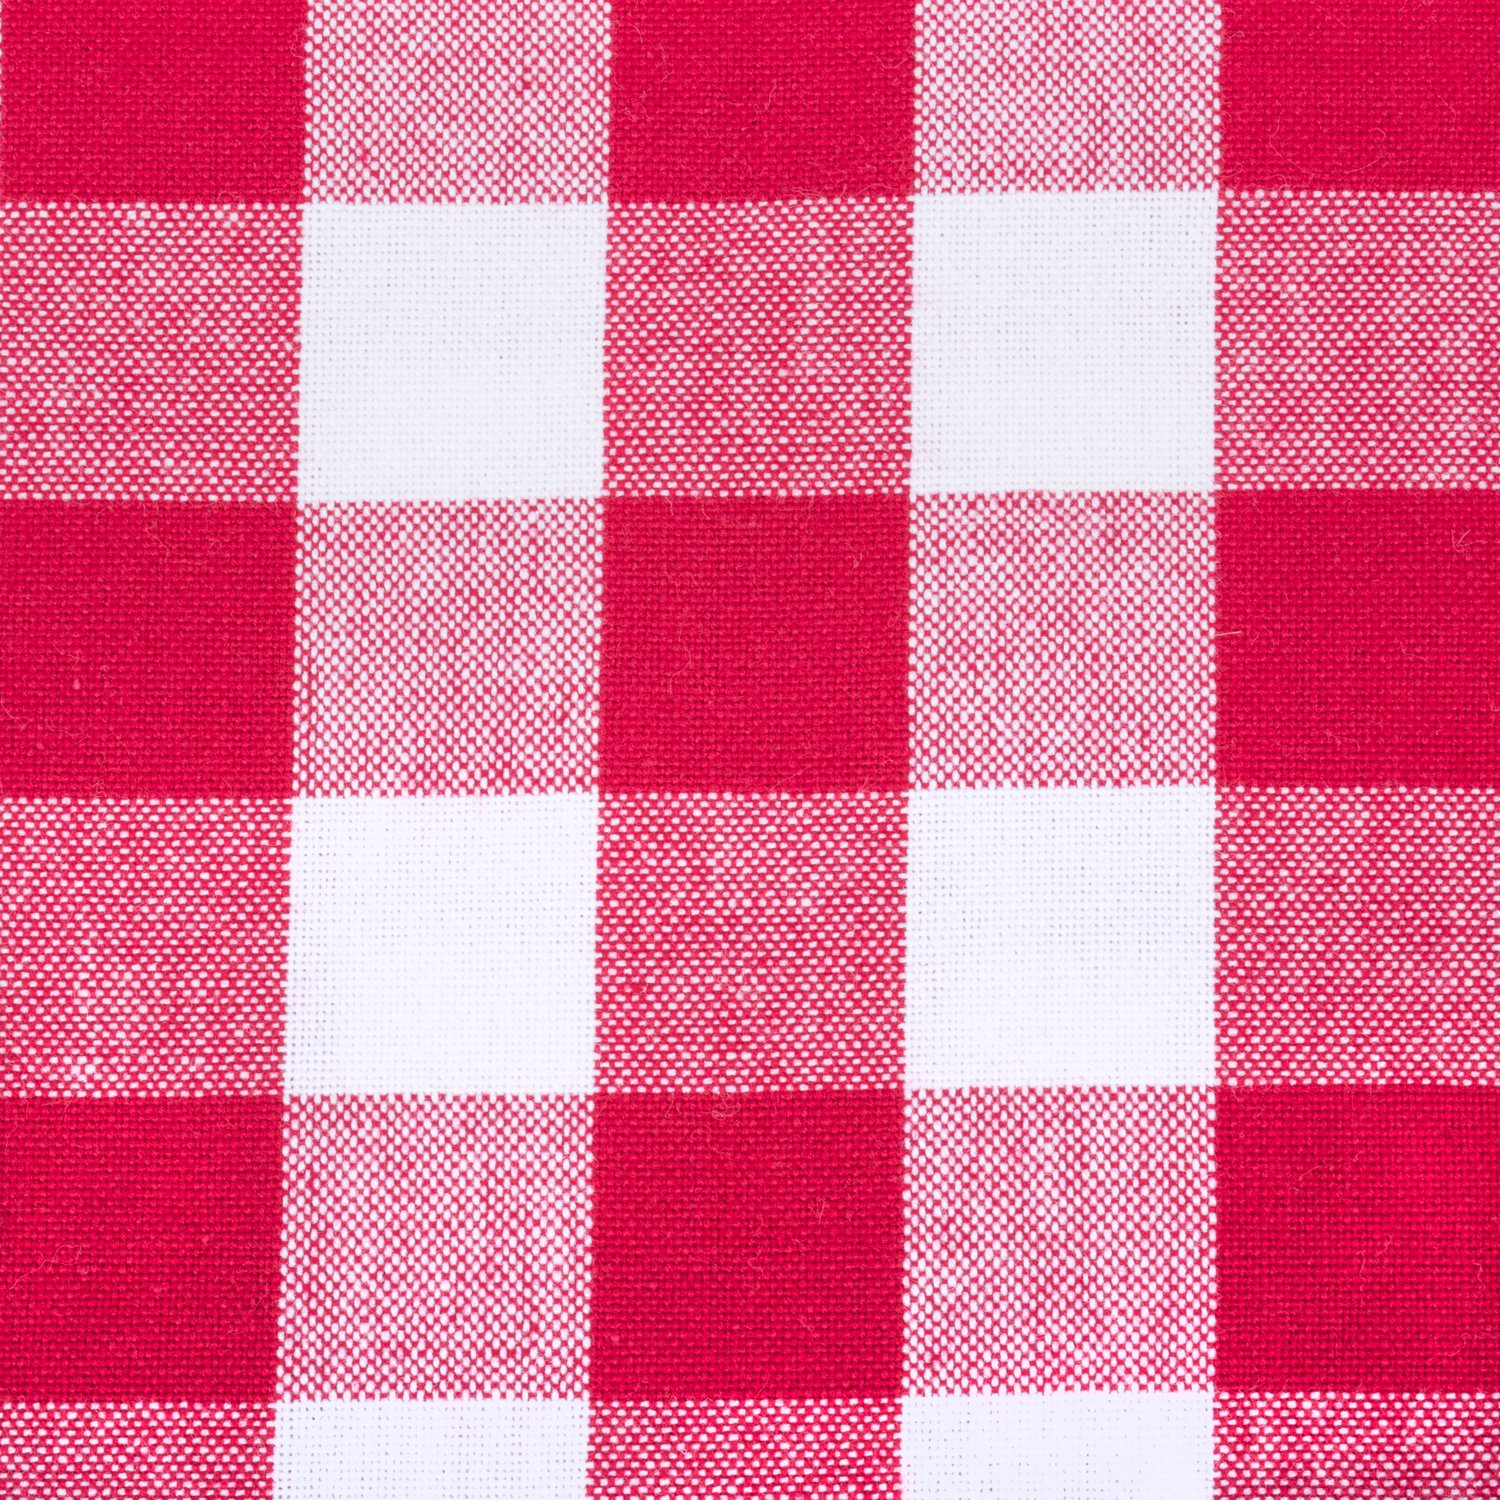 DII Oversized 20x20 Cotton Napkin, Pack of 6, Red & White Check - Perfect for Fall, Thanksgiving, Farmhouse DÃcor, Christmas, Picnics & Potlucks or Everyday Use by DII (Image #3)